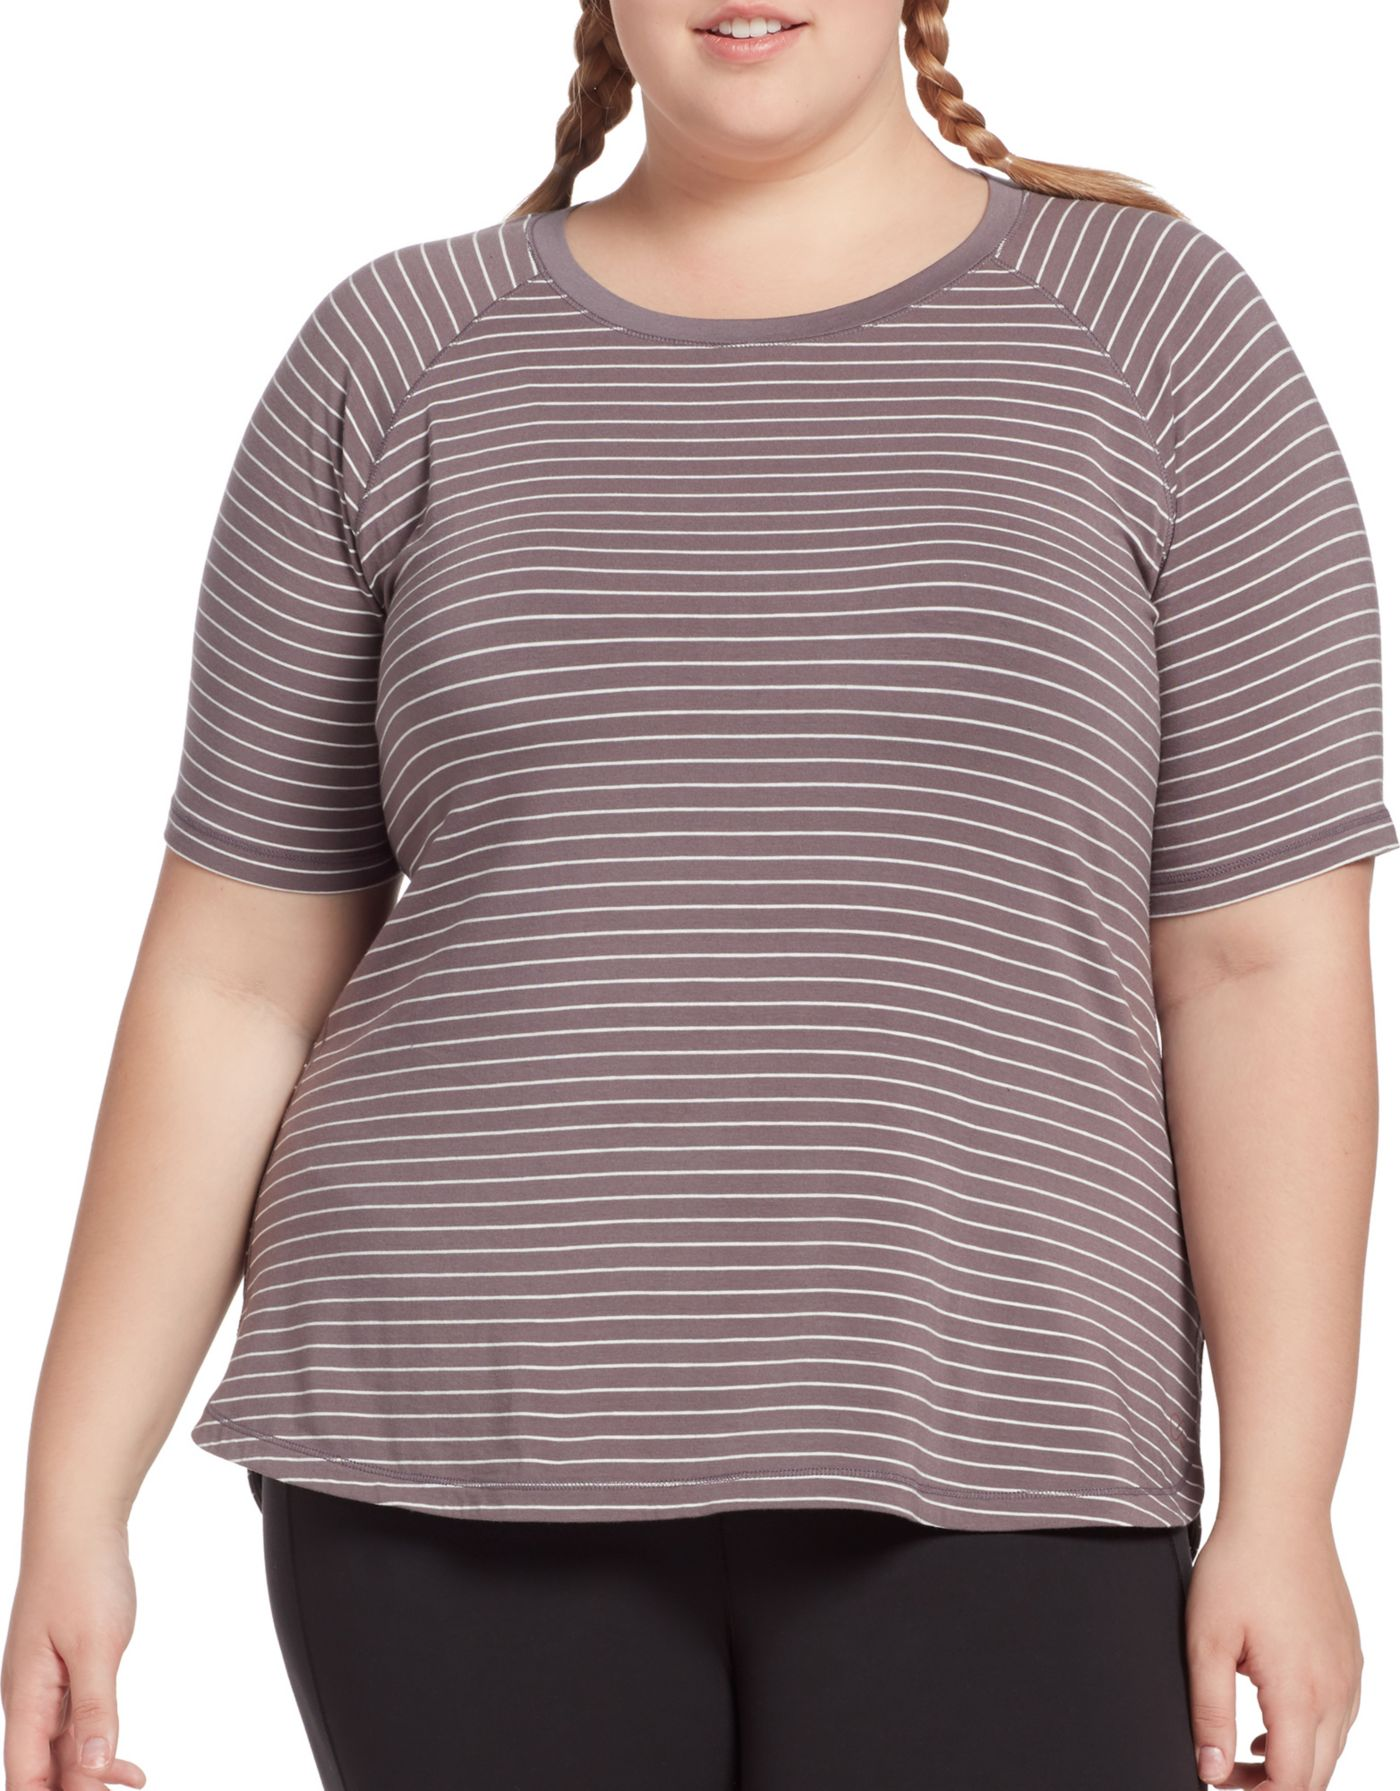 CALIA by Carrie Underwood Women's Plus Size Everyday Striped T-Shirt